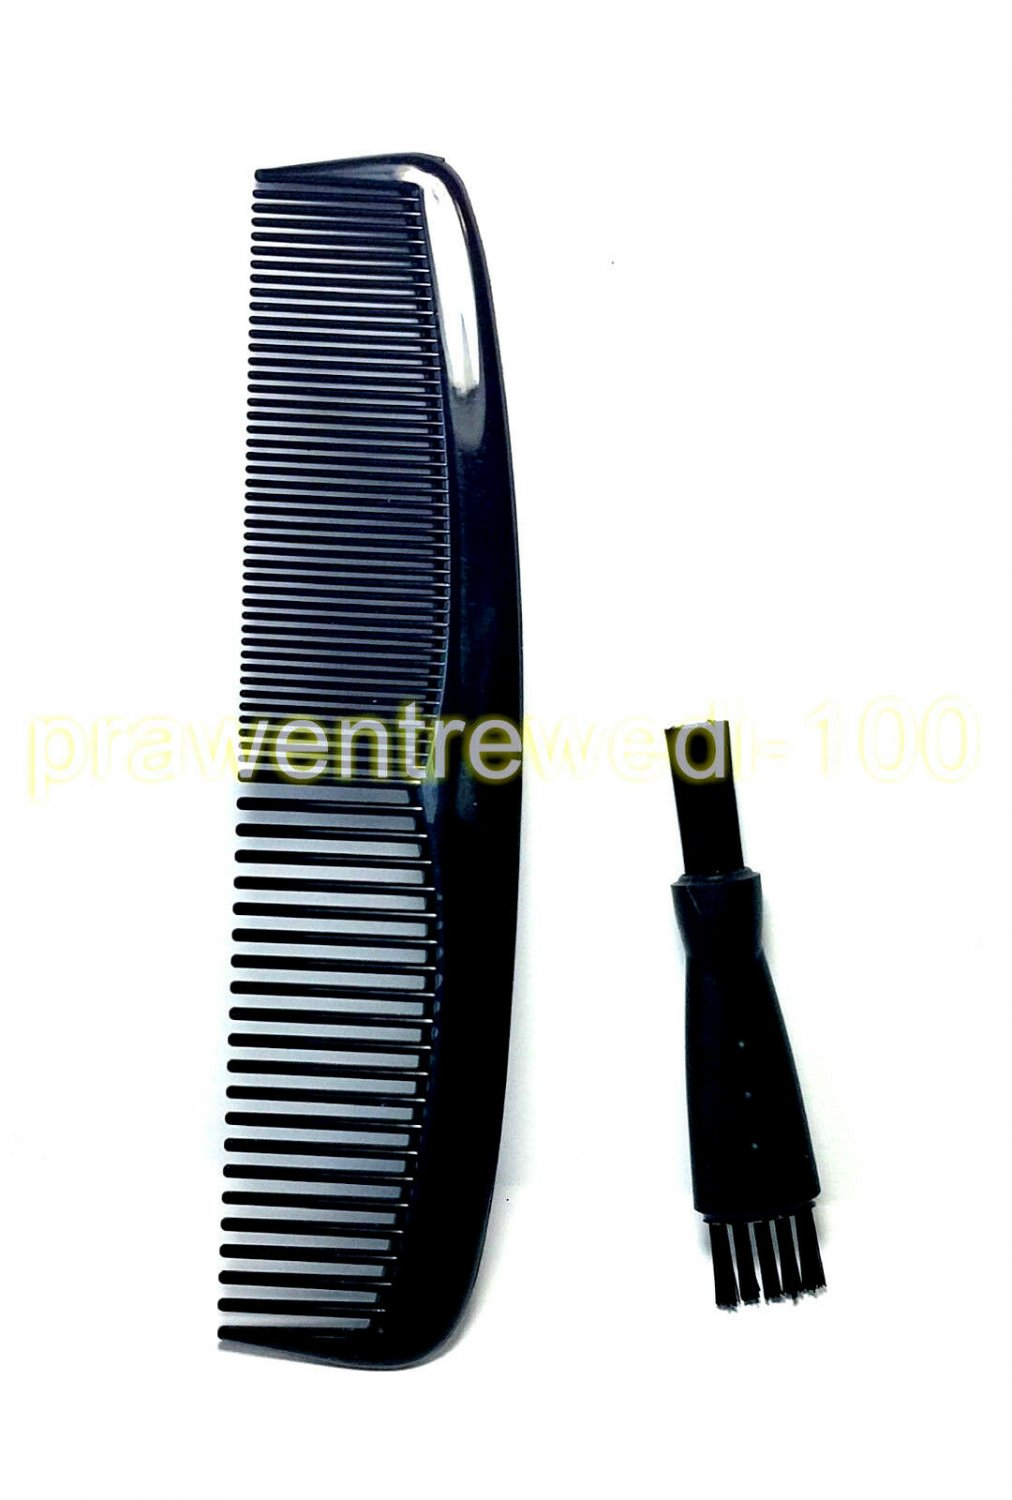 Philips Norelco G380 G370 G390 G290 Groomer Comb with Cleaning Brush GENUINE NEW